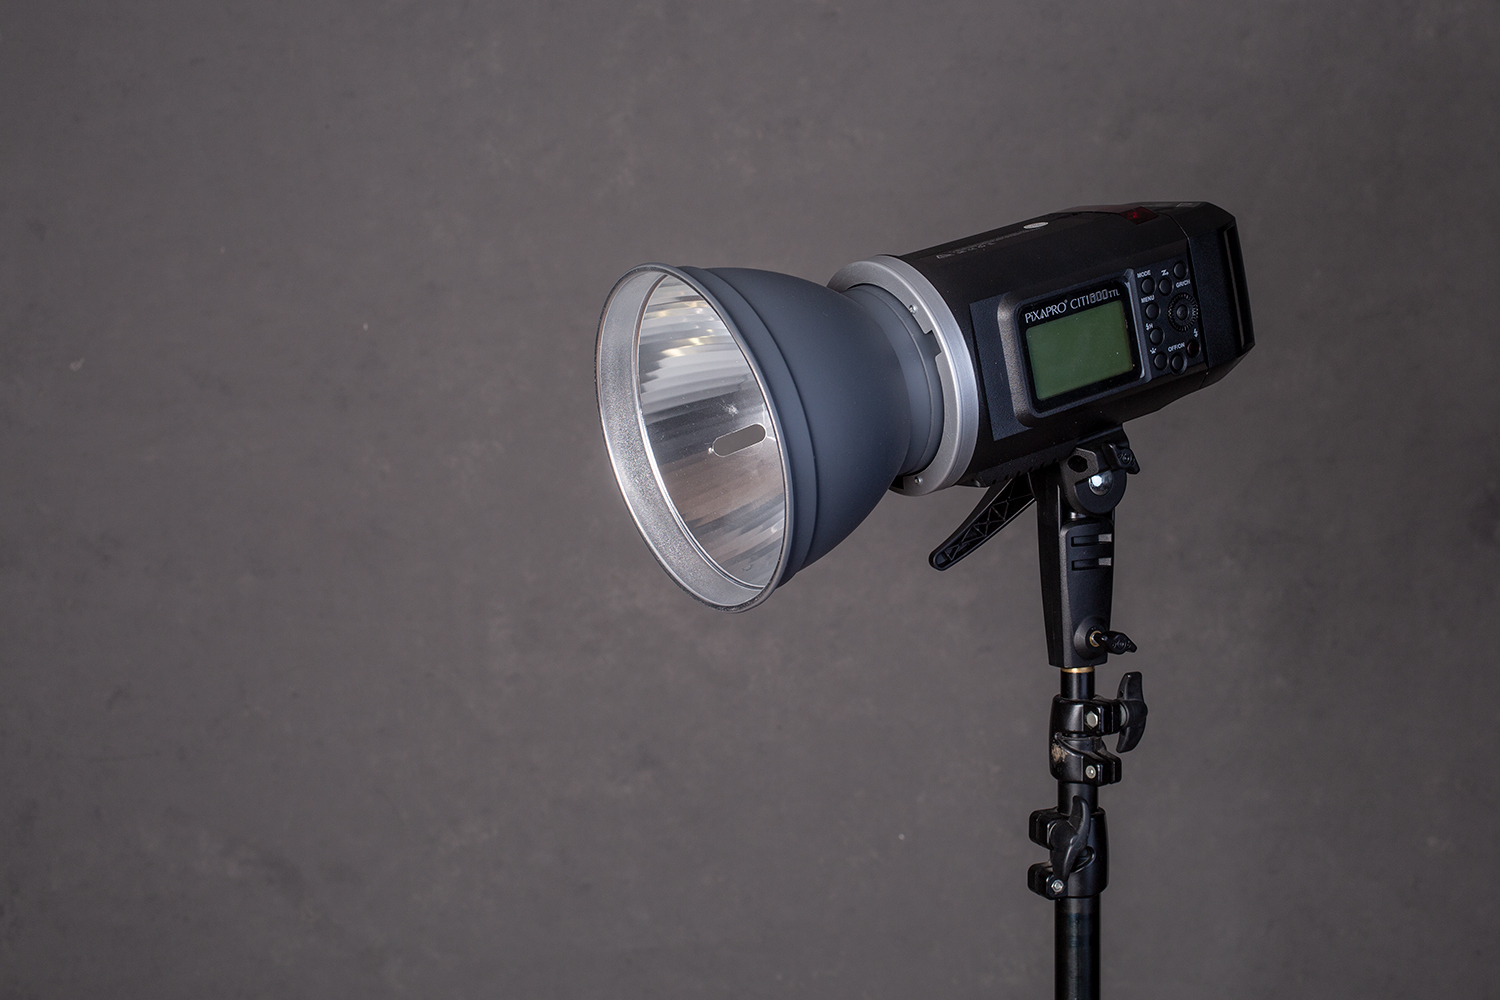 Image: Strobes are powerful flash units that pretty much dominate studio photography.